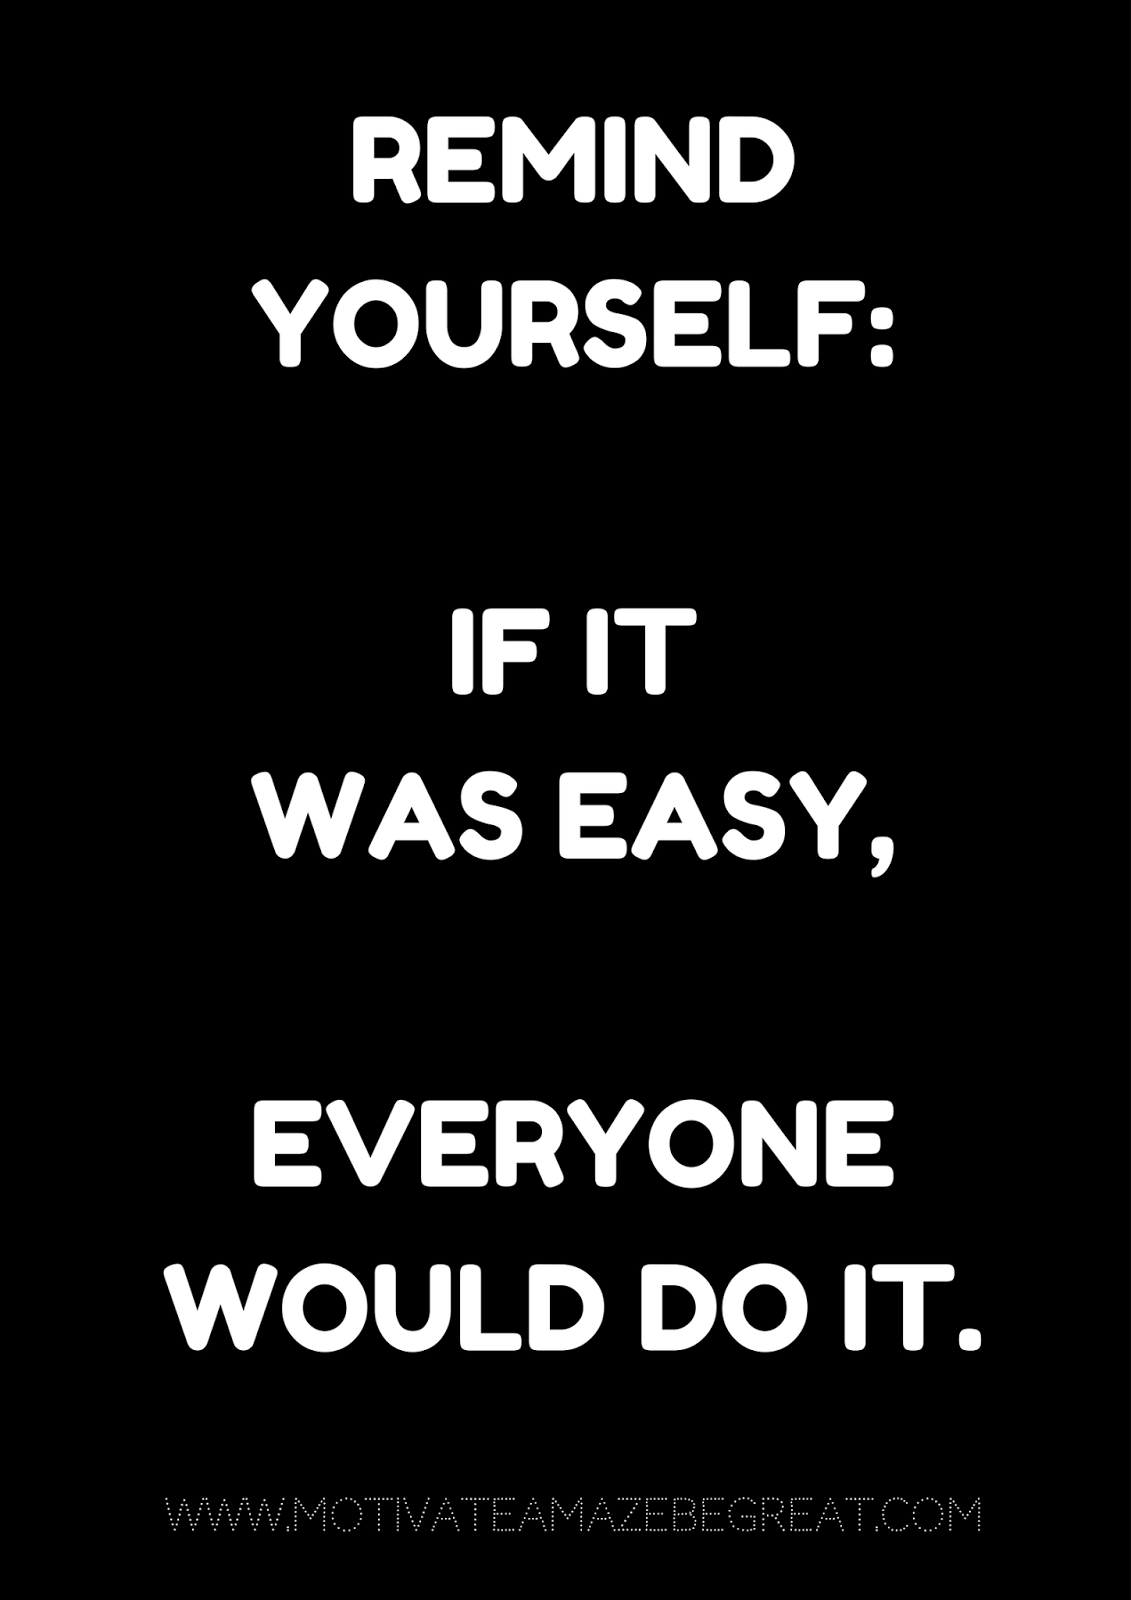 27 self motivation quotes and posters for success motivate amaze 27 self motivation quotes and posters for success remind yourself if it was solutioingenieria Gallery